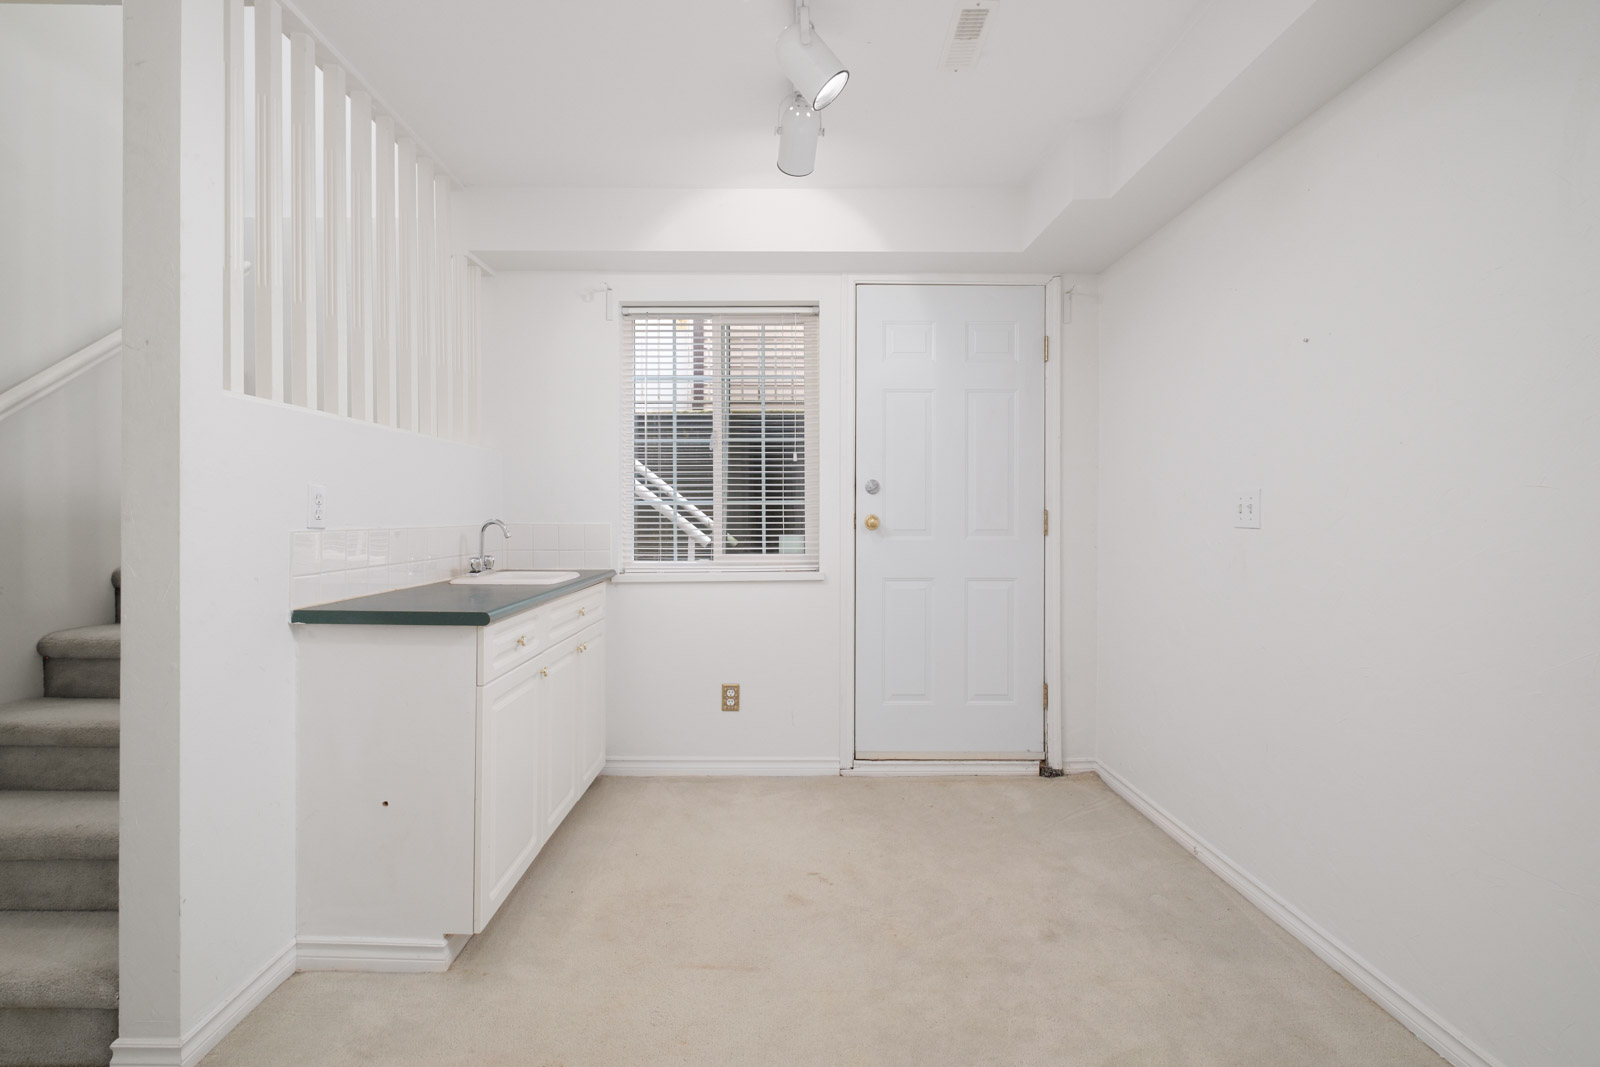 room with faucet and countertop on left and door with window in background with white walls in rental house in east vancouver